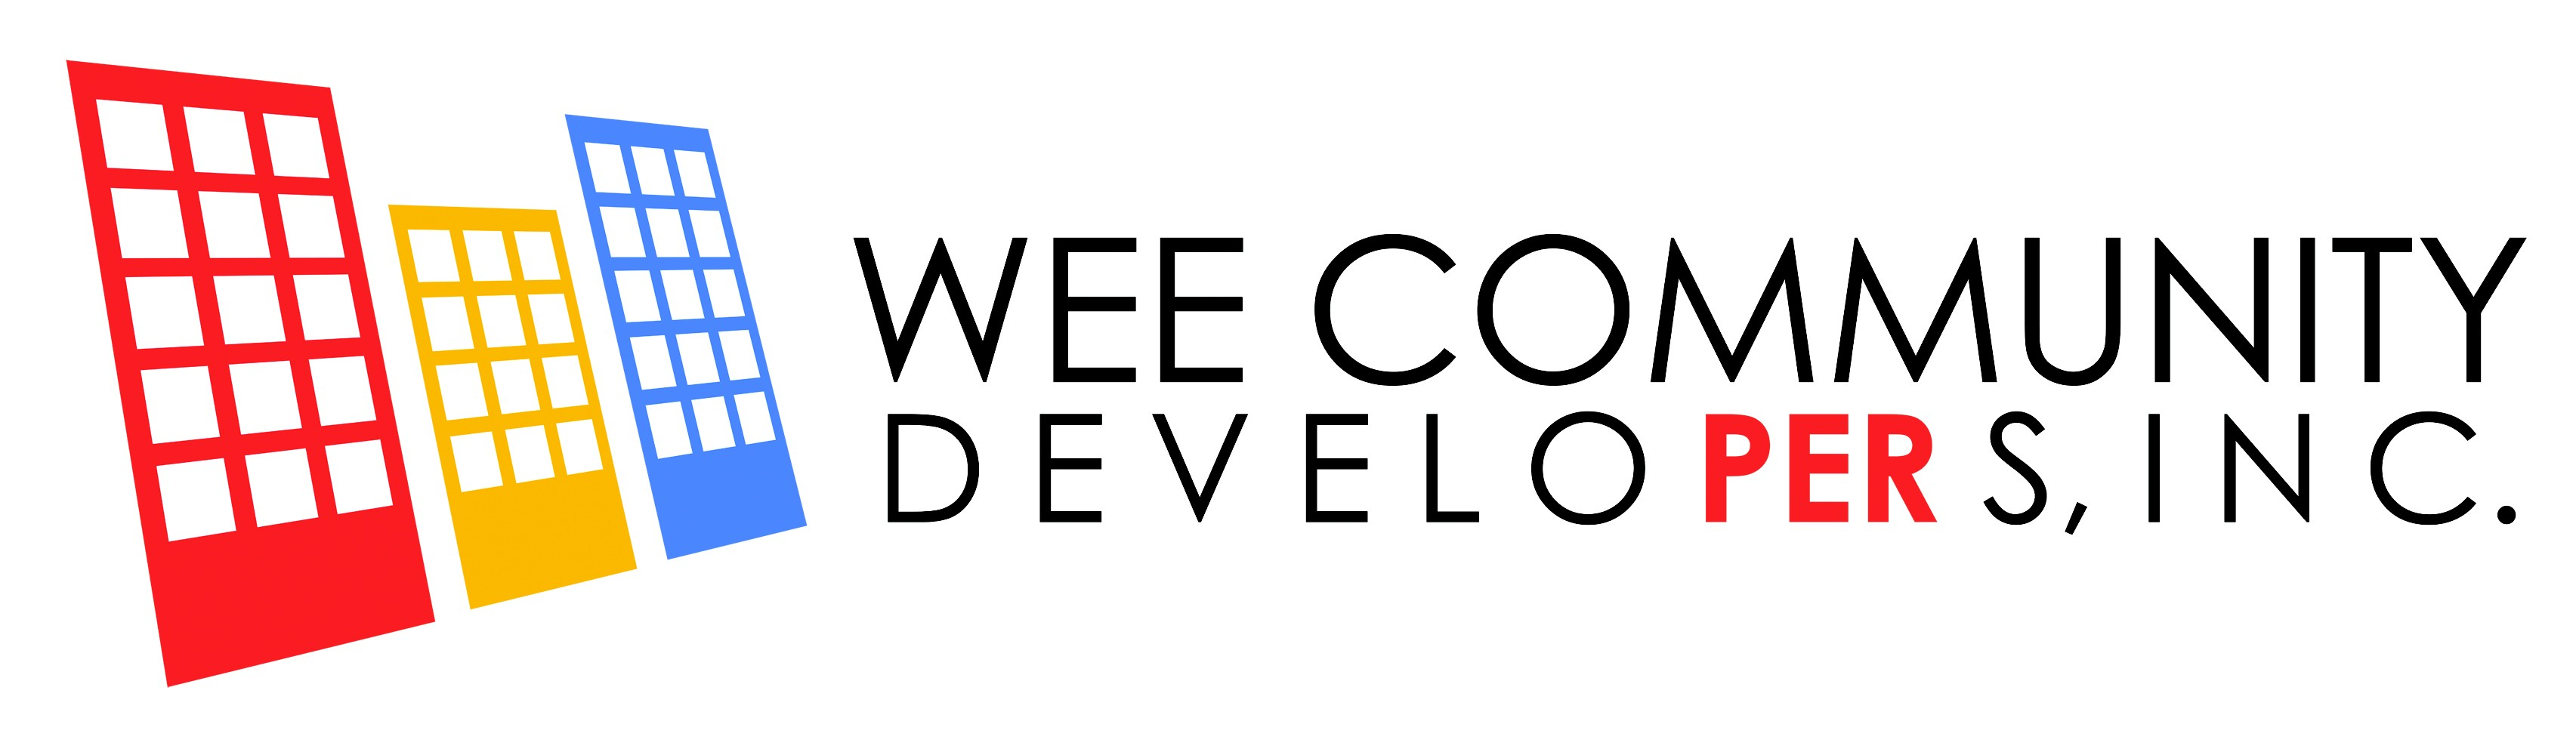 Wee Community Developers, Inc